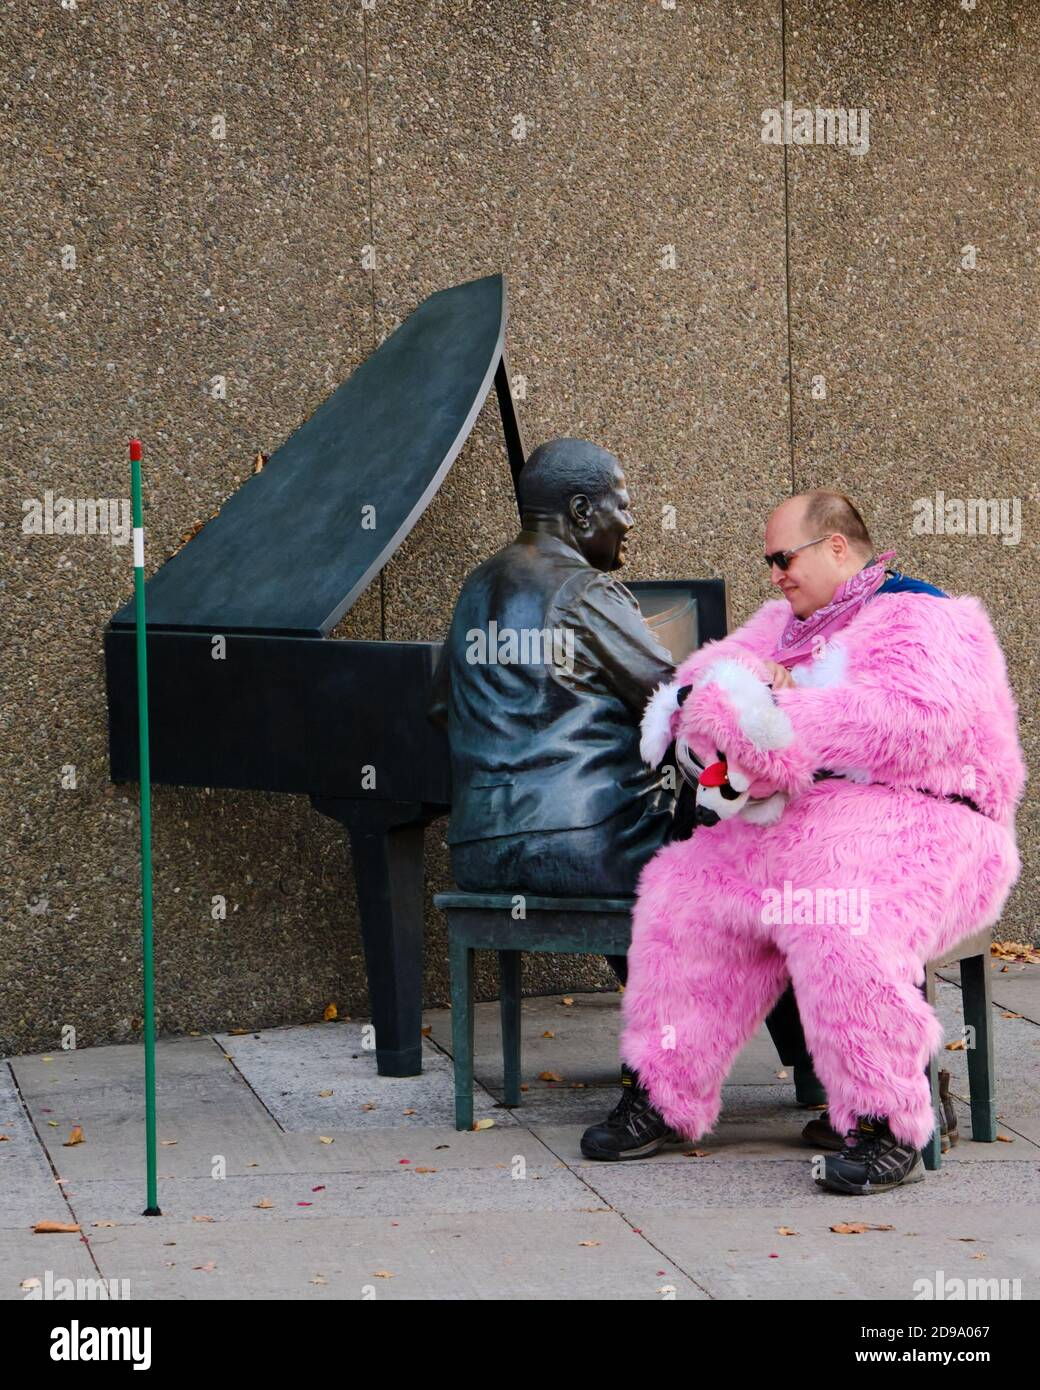 man-in-pink-animal-costume-with-the-head-removed-sitting-for-a-break-on-pianist-statue-in-ottawa-canada-2D9A067.jpg